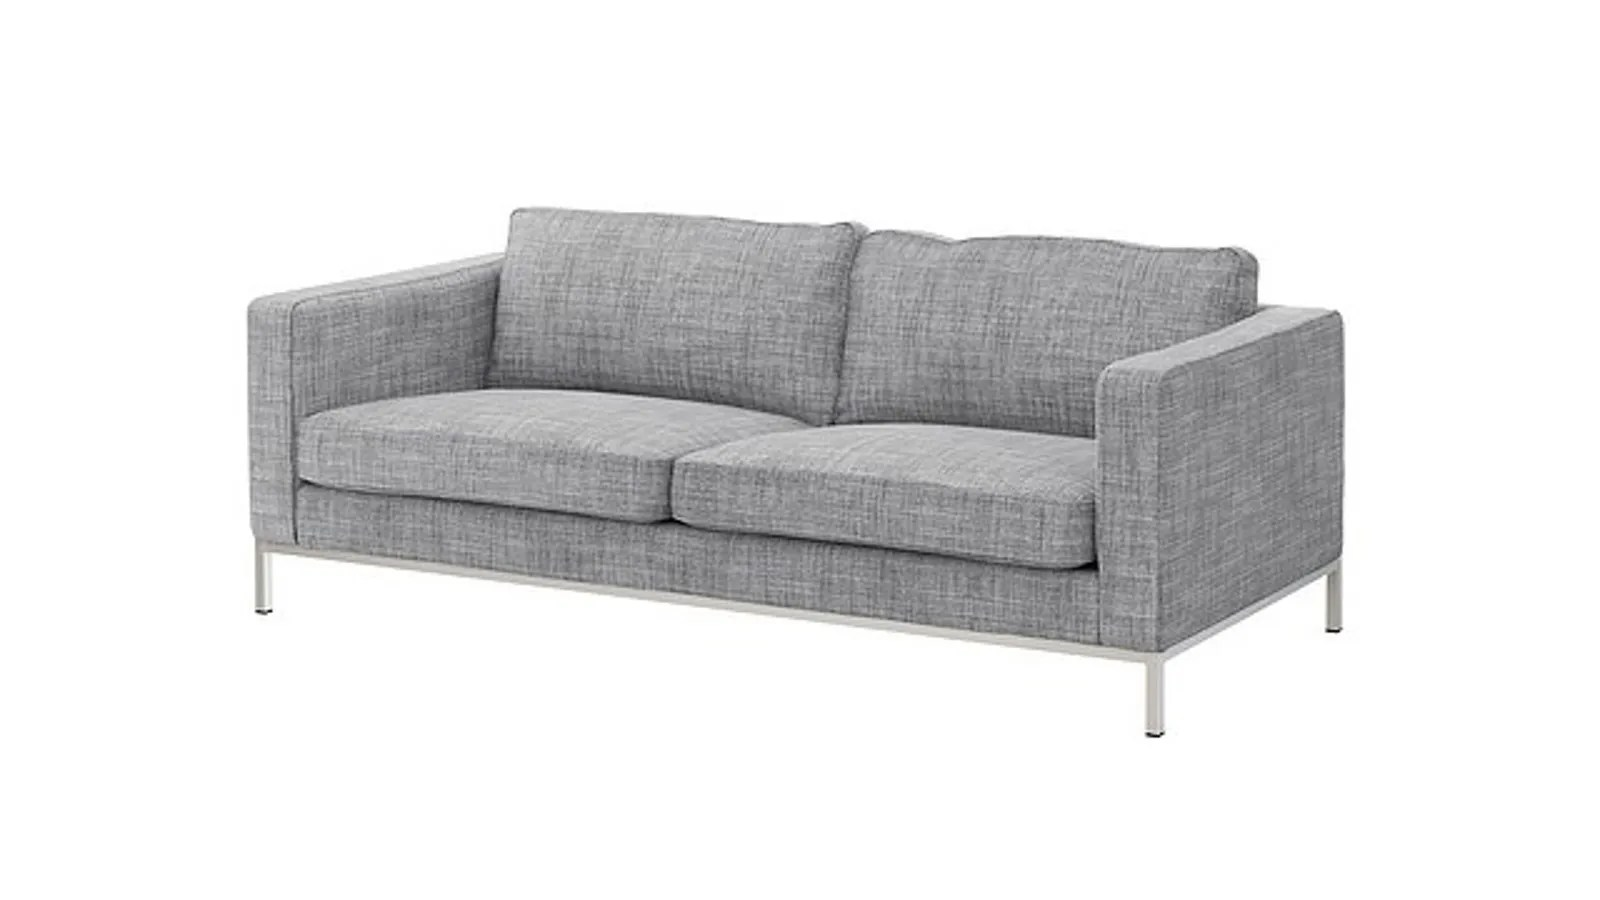 Ikea Kivik Sofa Assembly Worth It You Have To Sit On Something